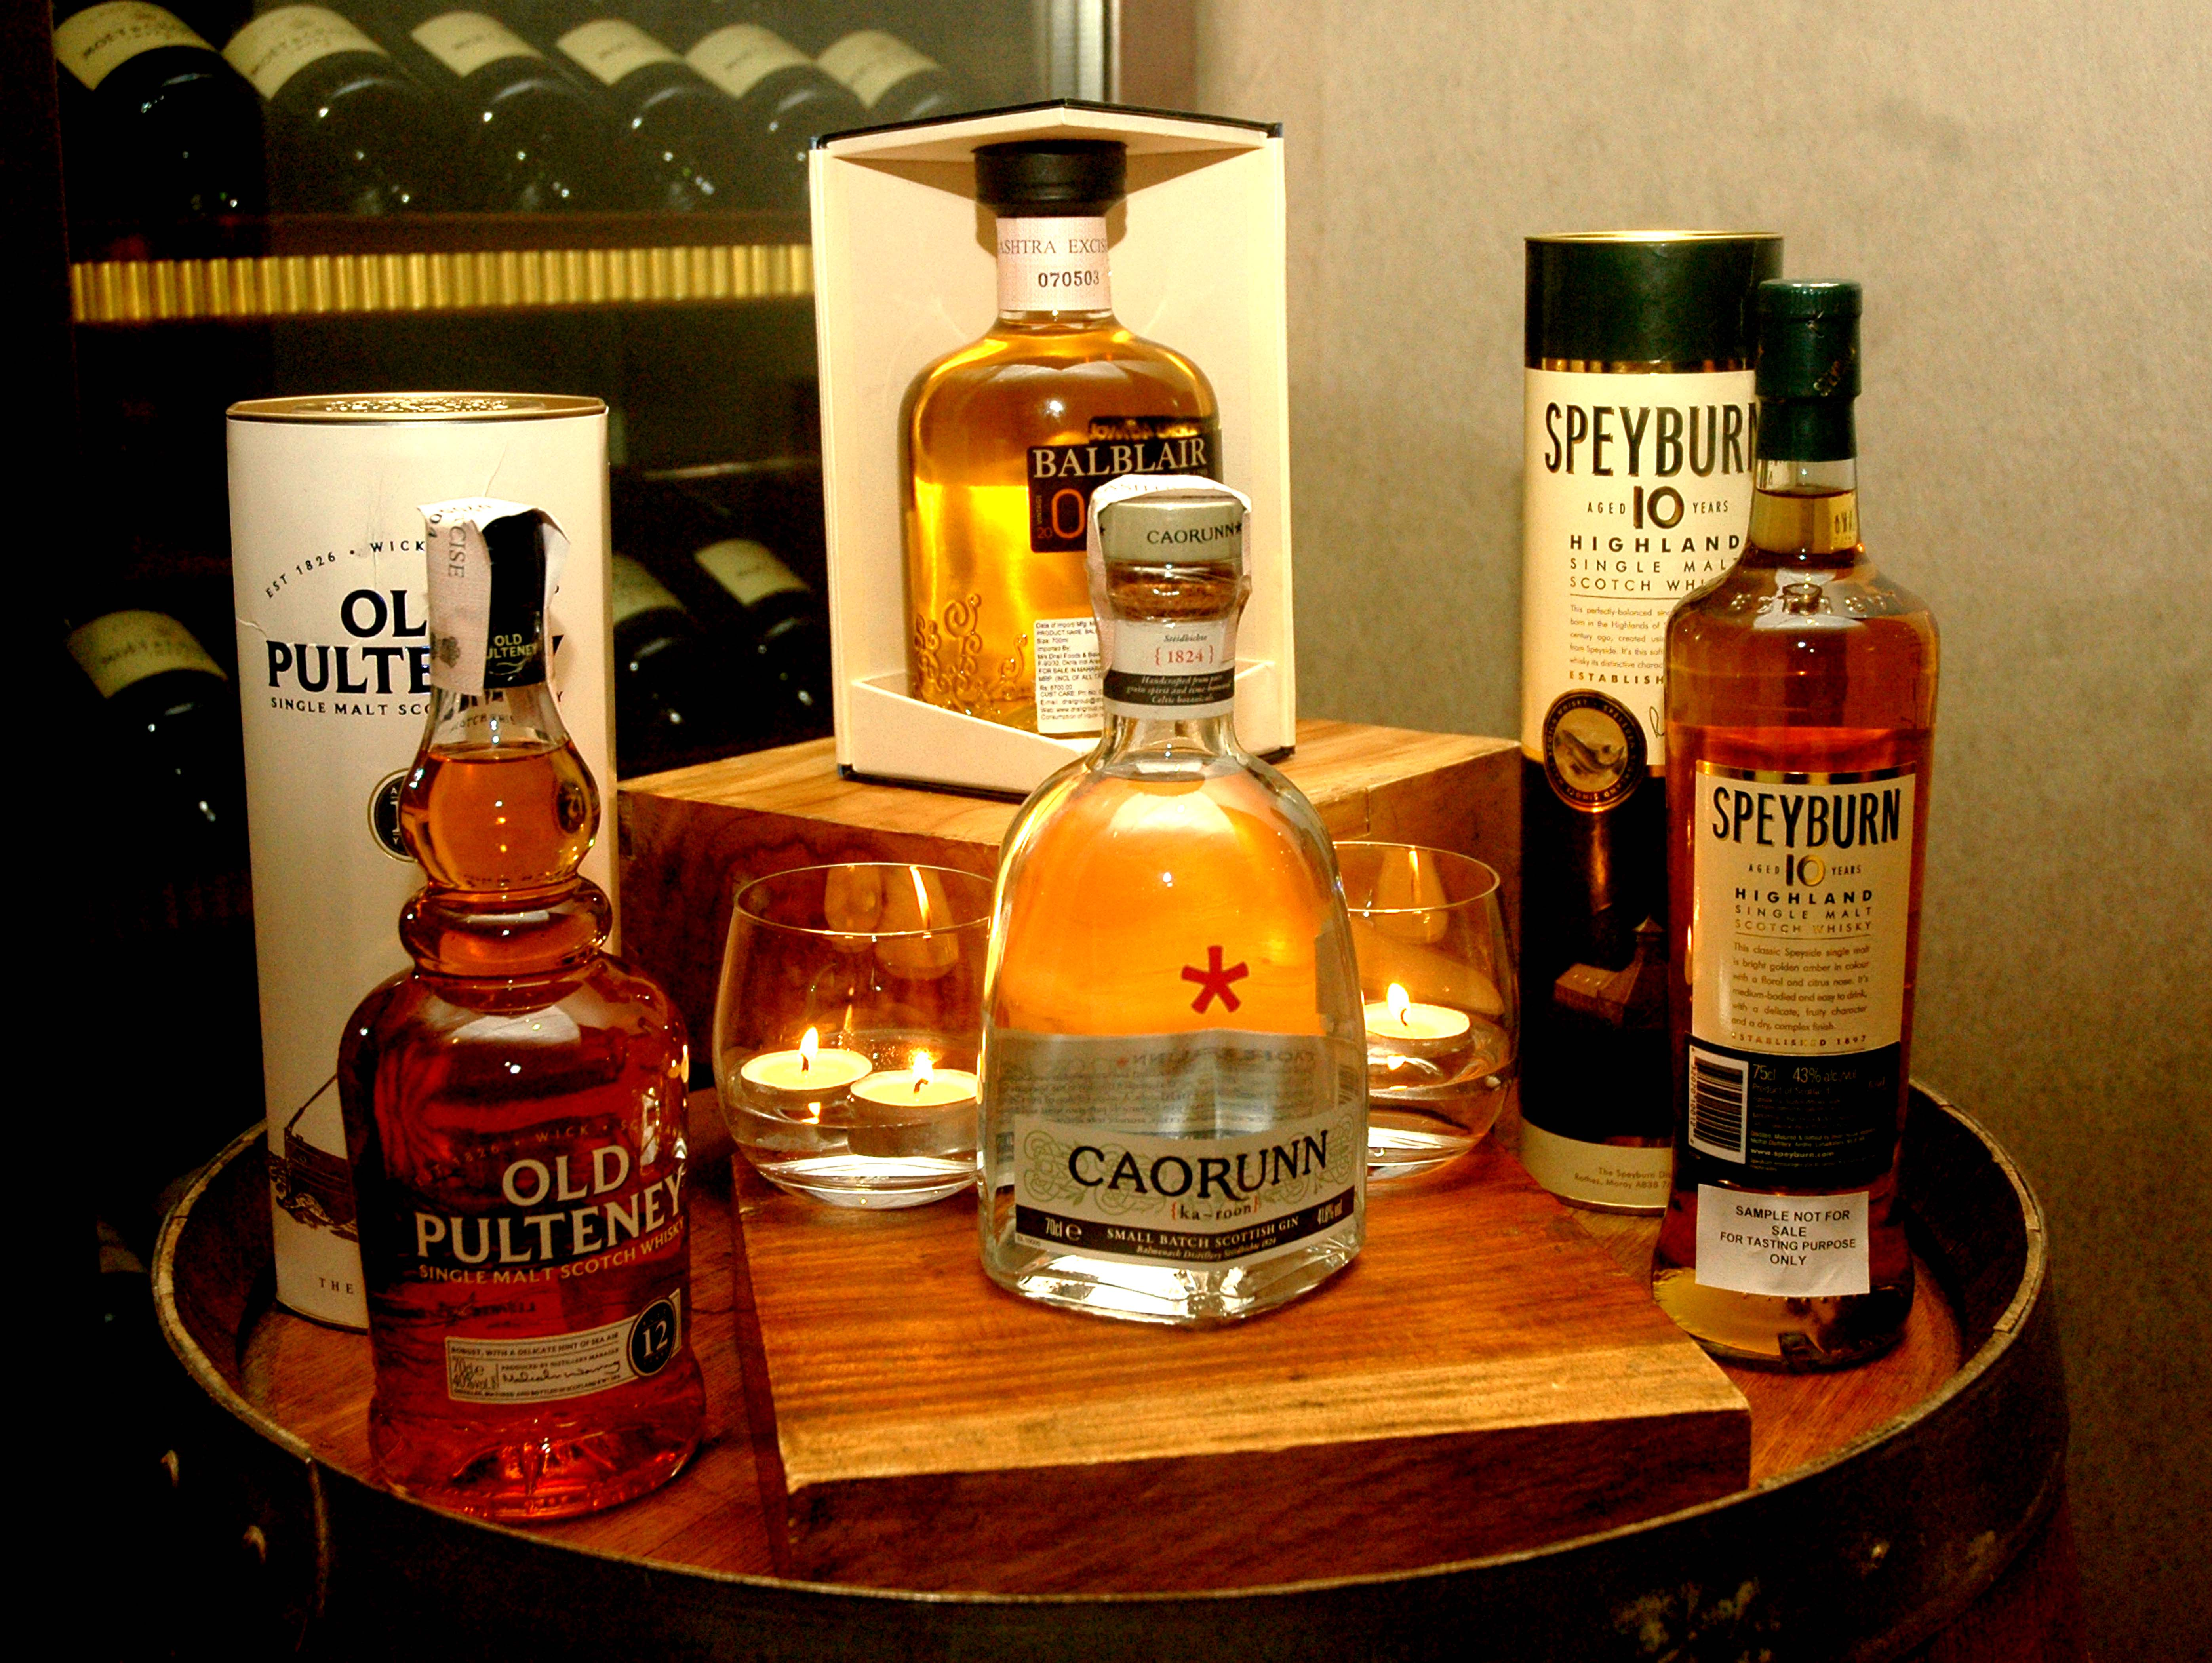 pulteney hindu singles Find the list of all single malt scotch whisky brands, their aroma and experience the taste of your favorite single malt whiskies in a new manner with the whiskypedia also, find blended.